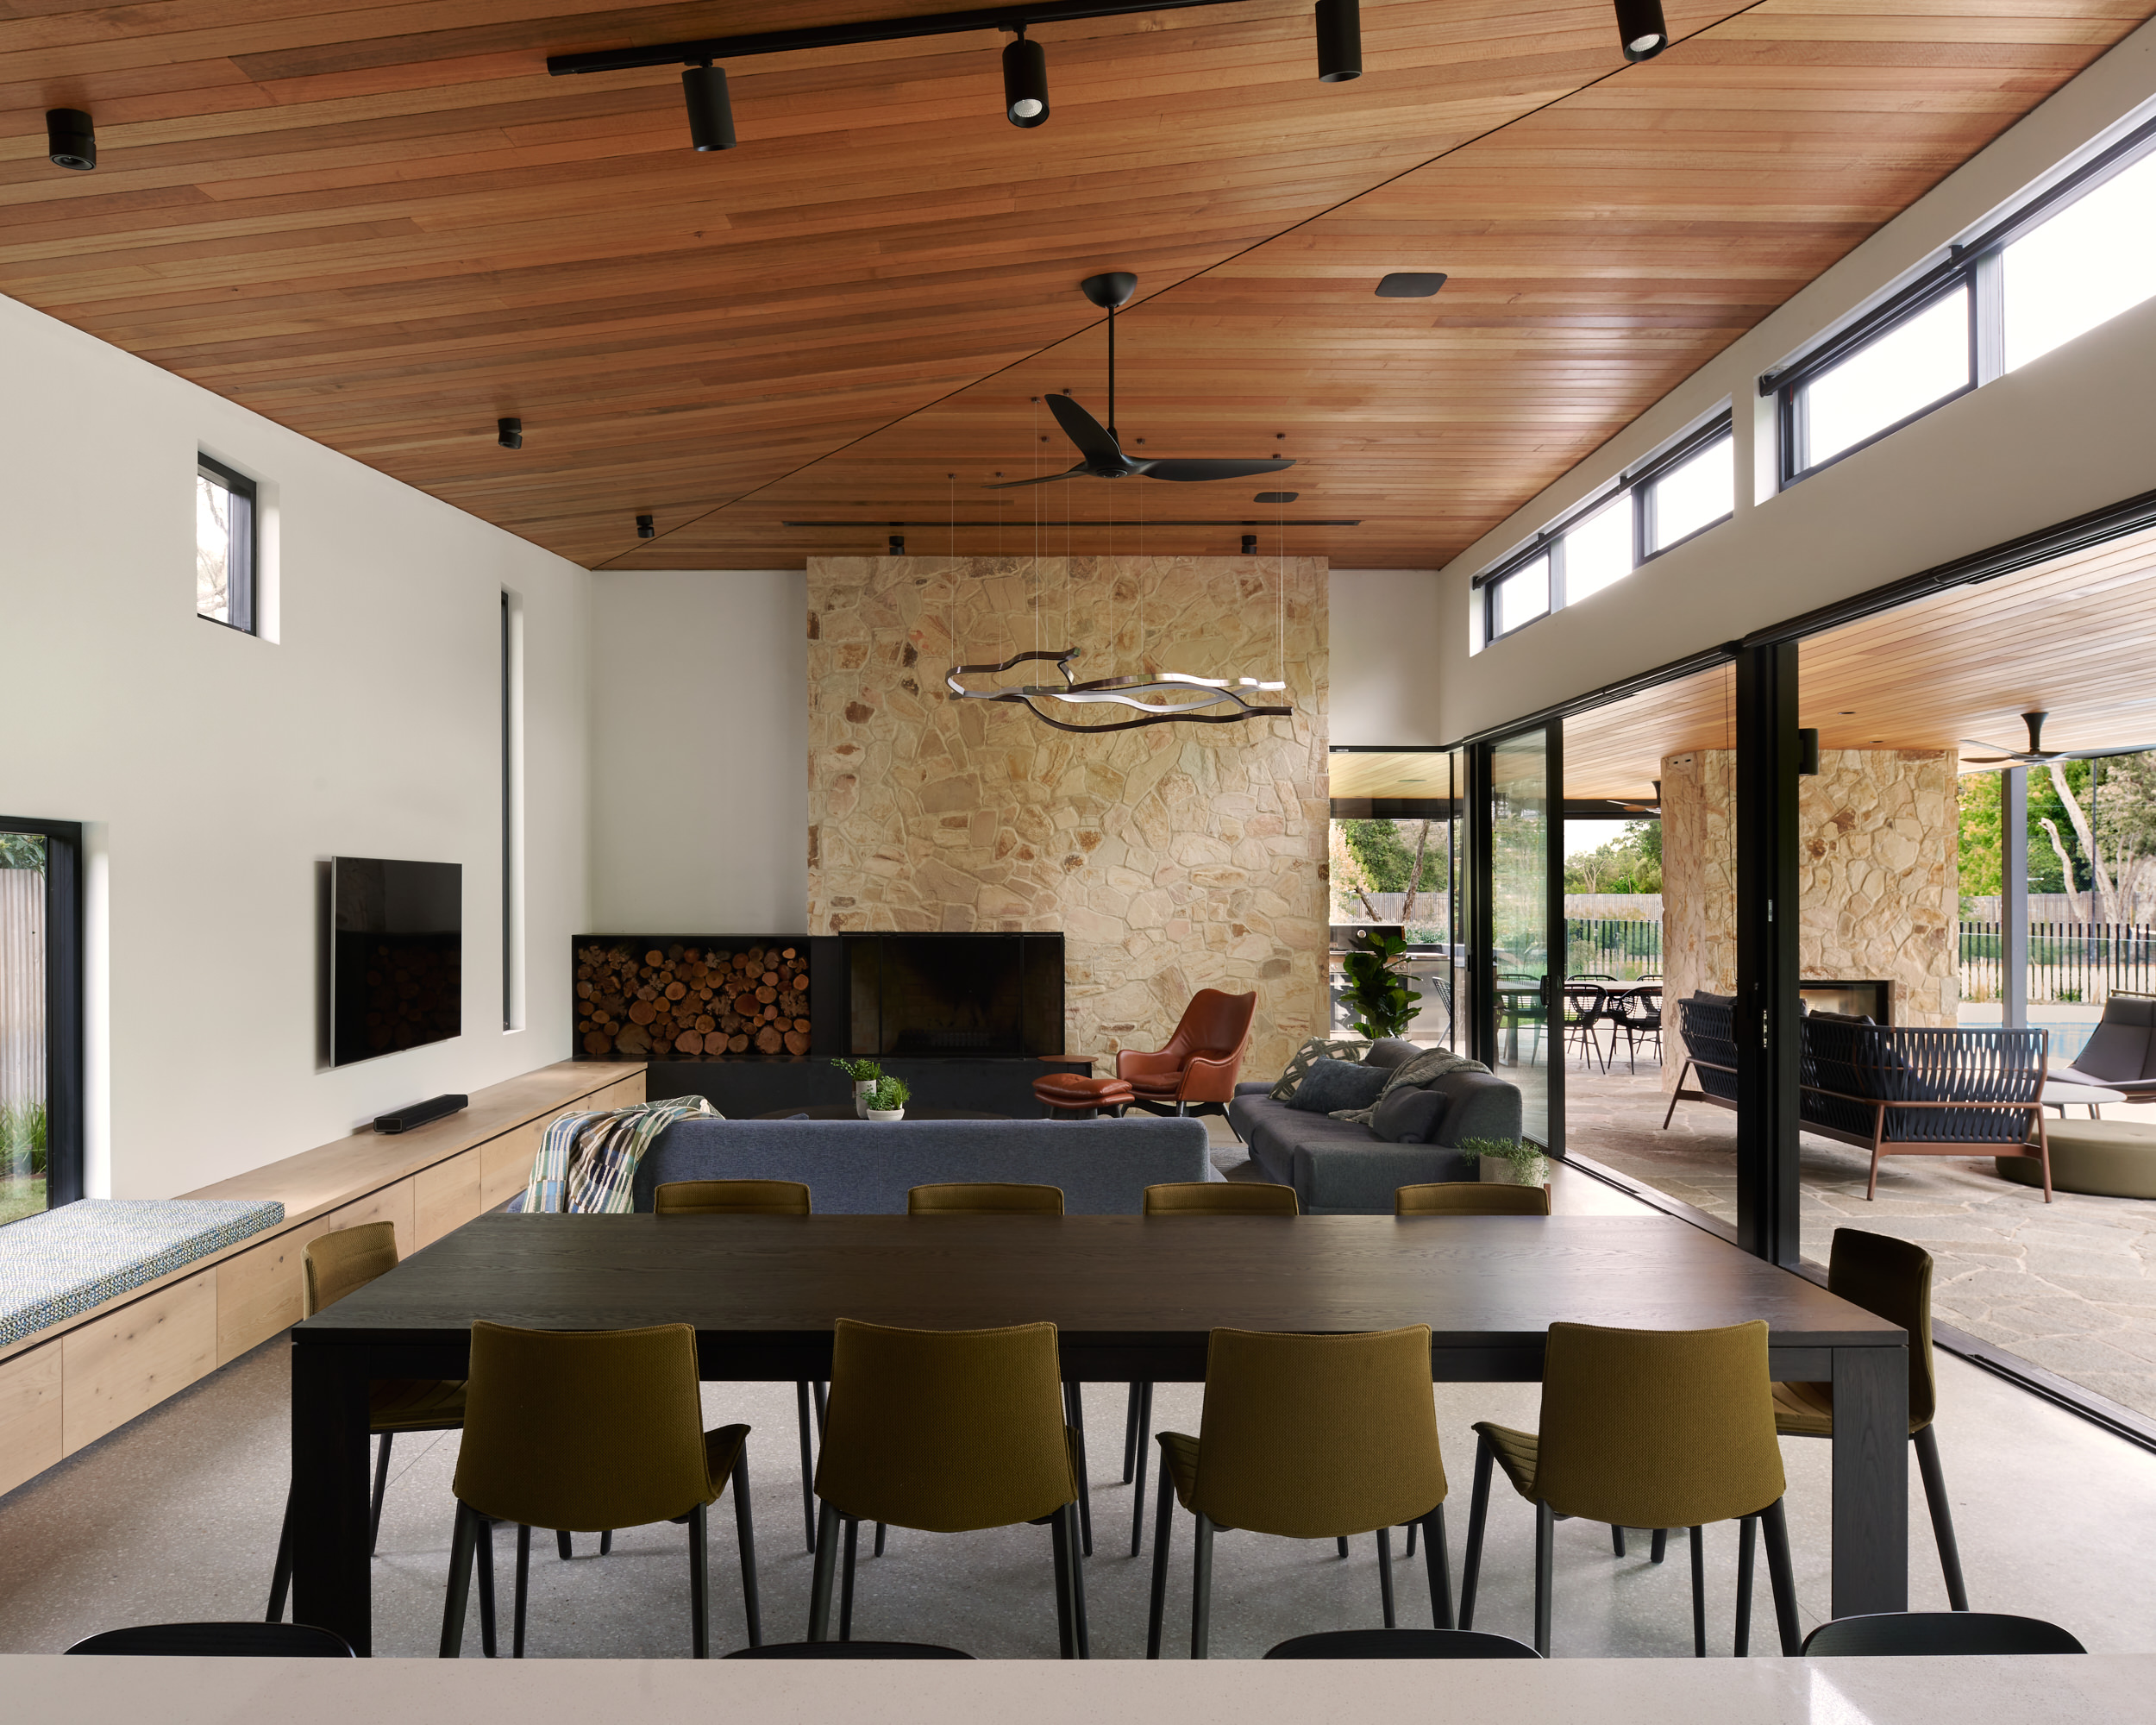 Whitecliff Residence is a residential project whose architecture and interiors are designed by Ascui & Co